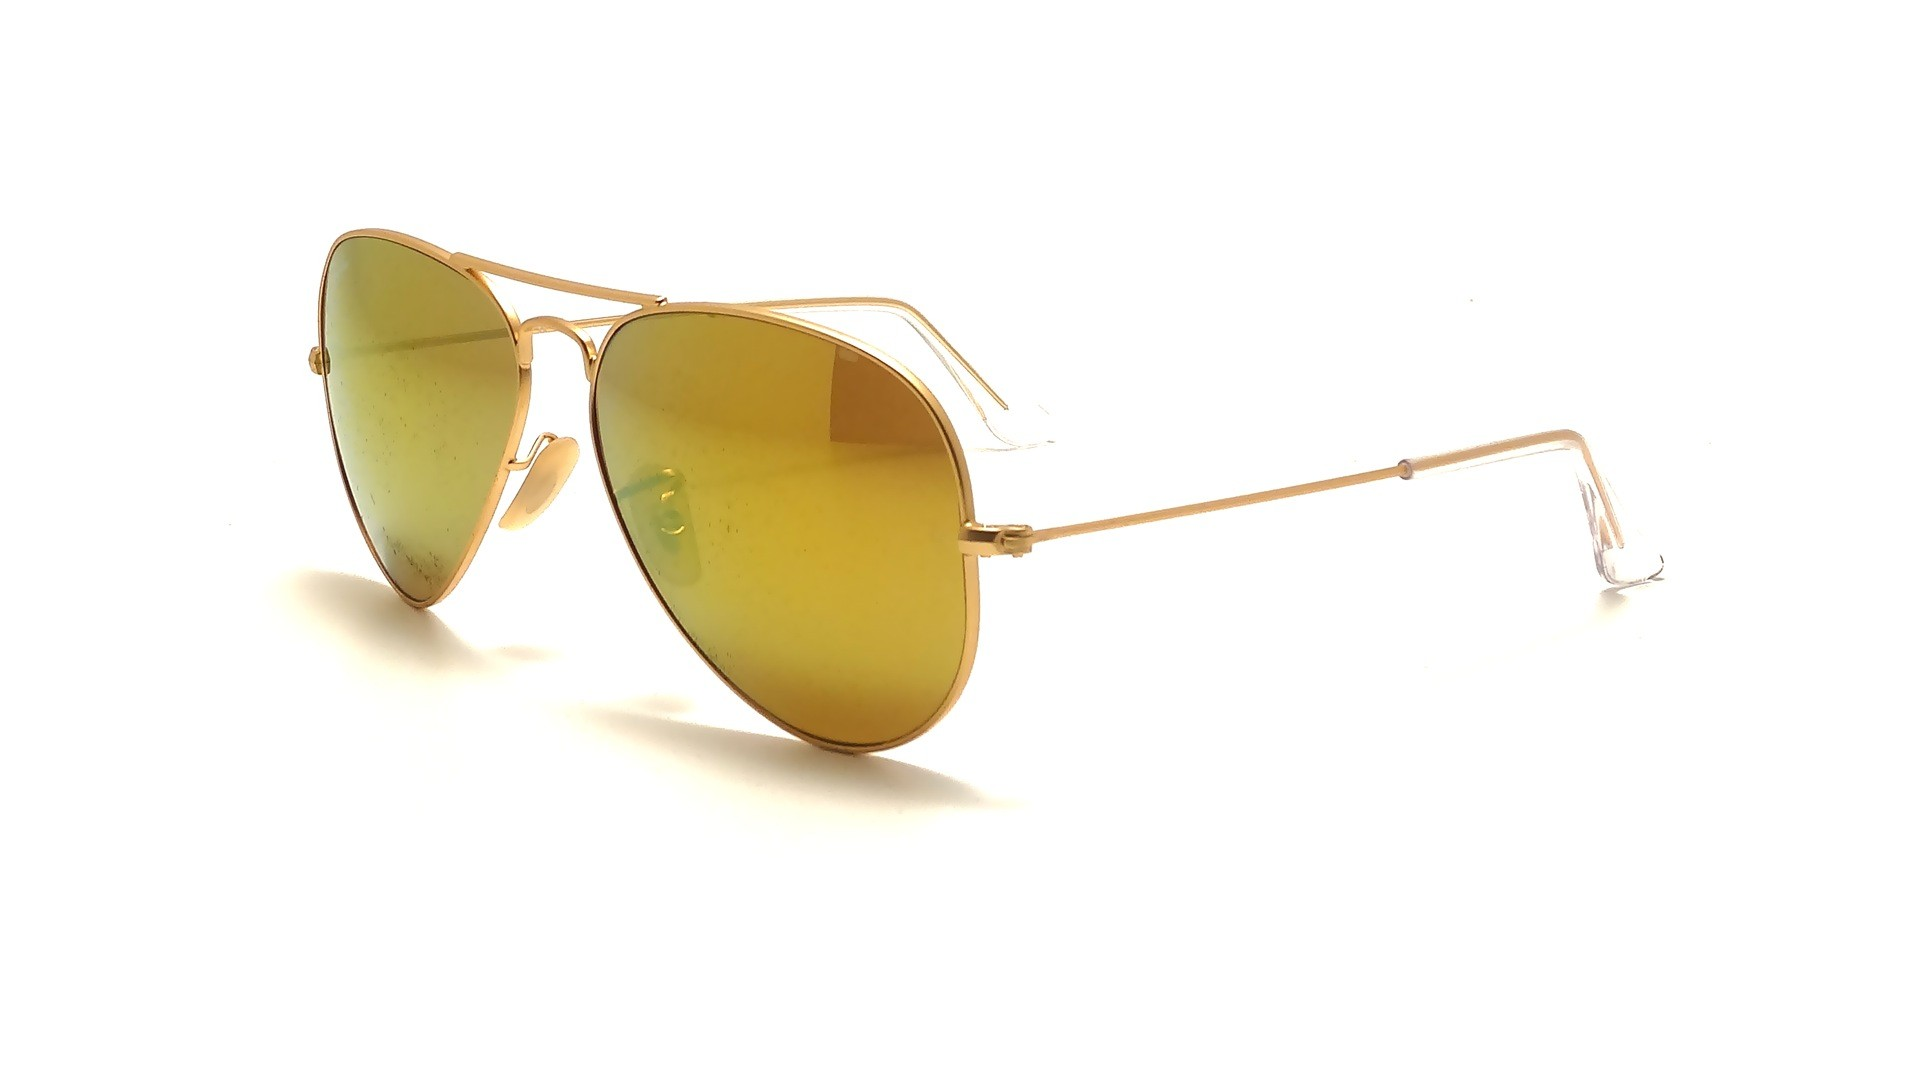 Ray ban aviator metal or rb3025 112 93 58 14 prix 109 90 for Lunettes de soleil ray ban aviator miroir